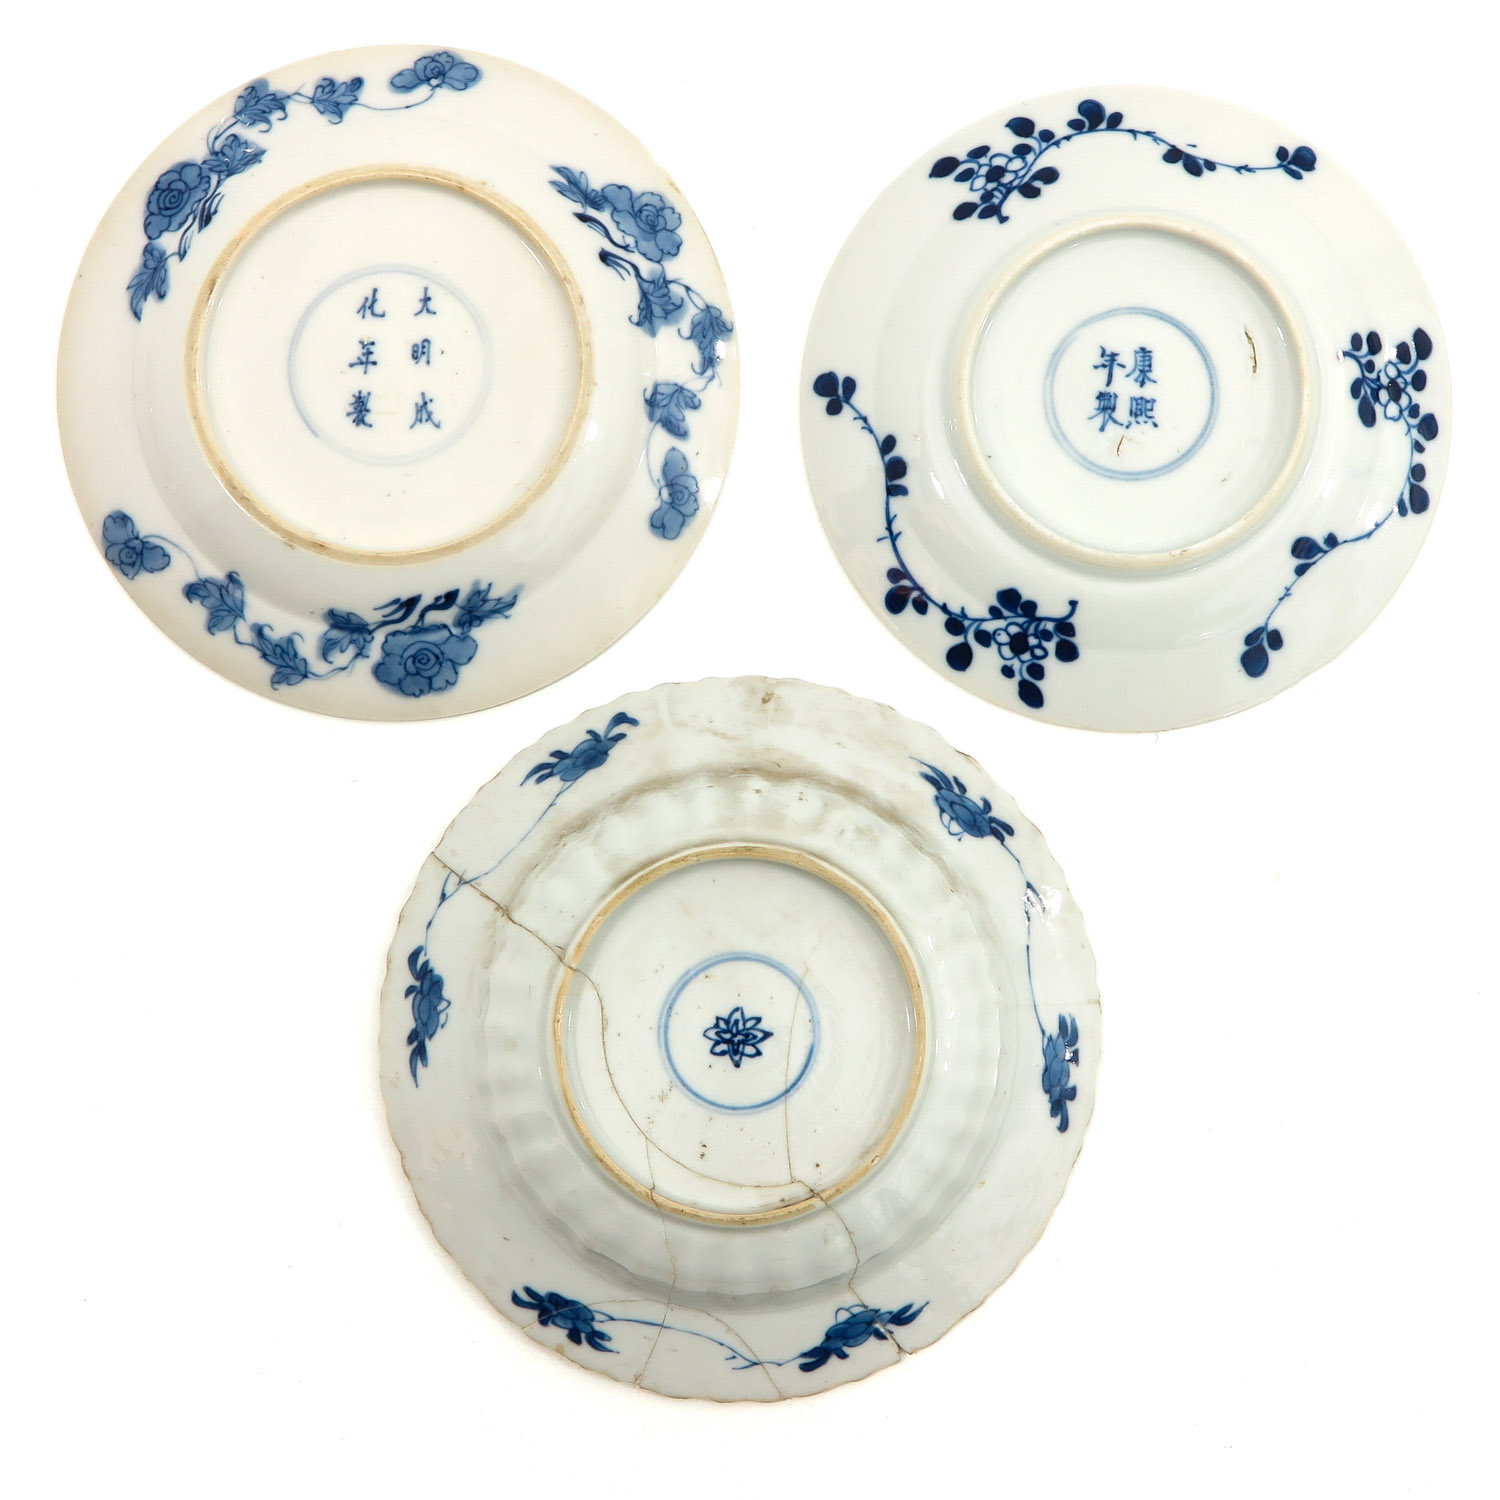 A Collection of 9 Blue and White Plates - Image 6 of 10